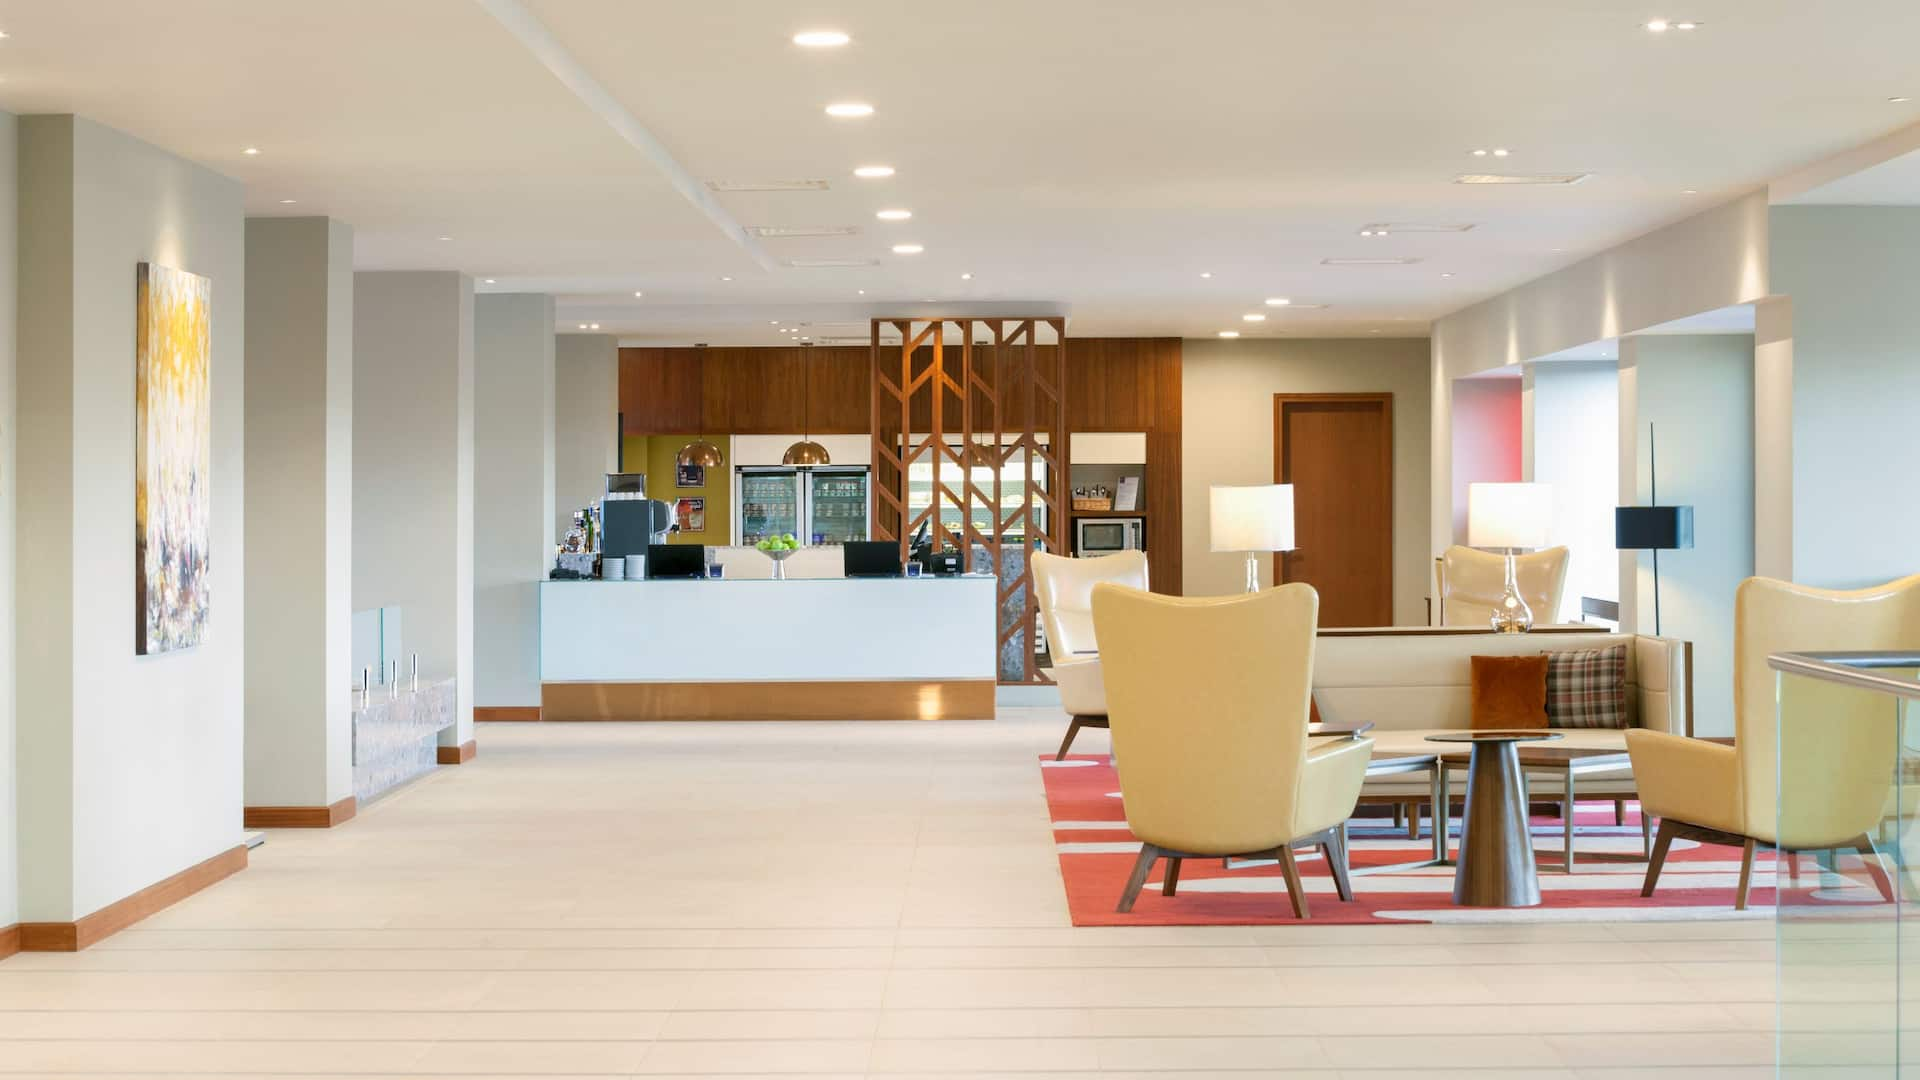 Hyatt Place West London/Hayes Lobby